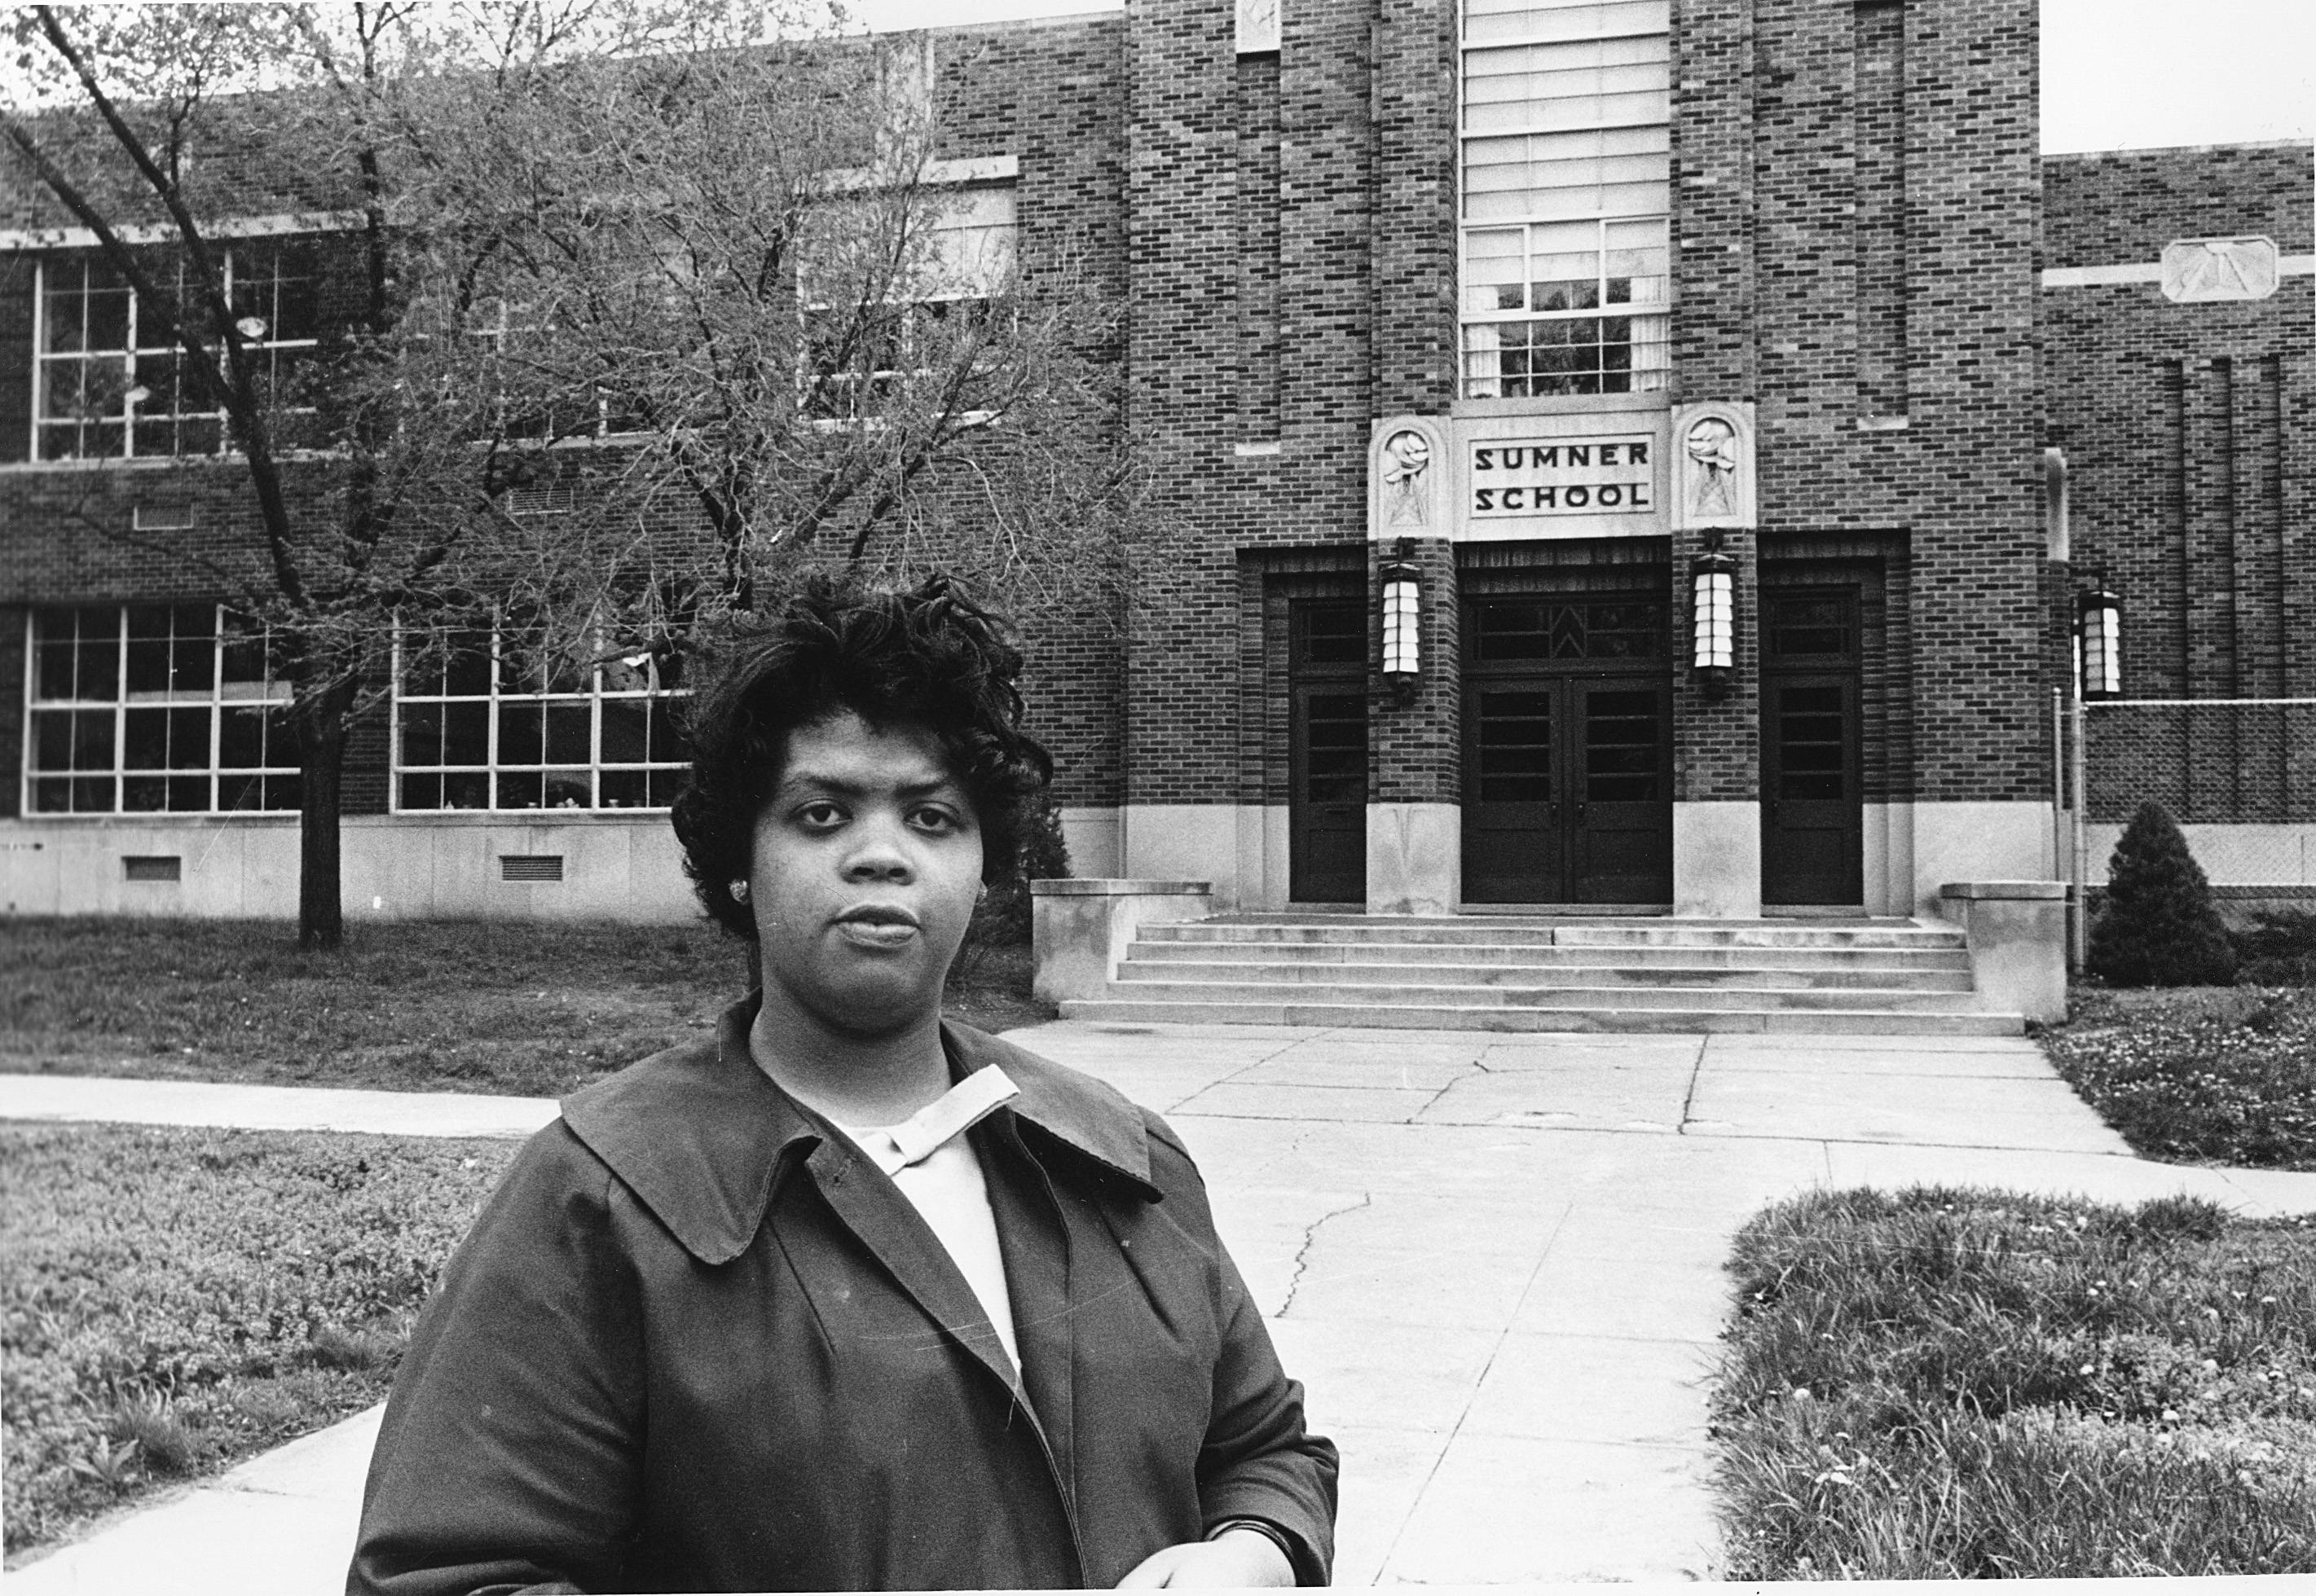 Linda Brown stands in front of the Sumner School in Topeka, Kansas in 1954. The refusal of the public school to admit Brown in 1951, then 9, because she is black, led to the Brown v. Board of Education of Topeka, Kansas.